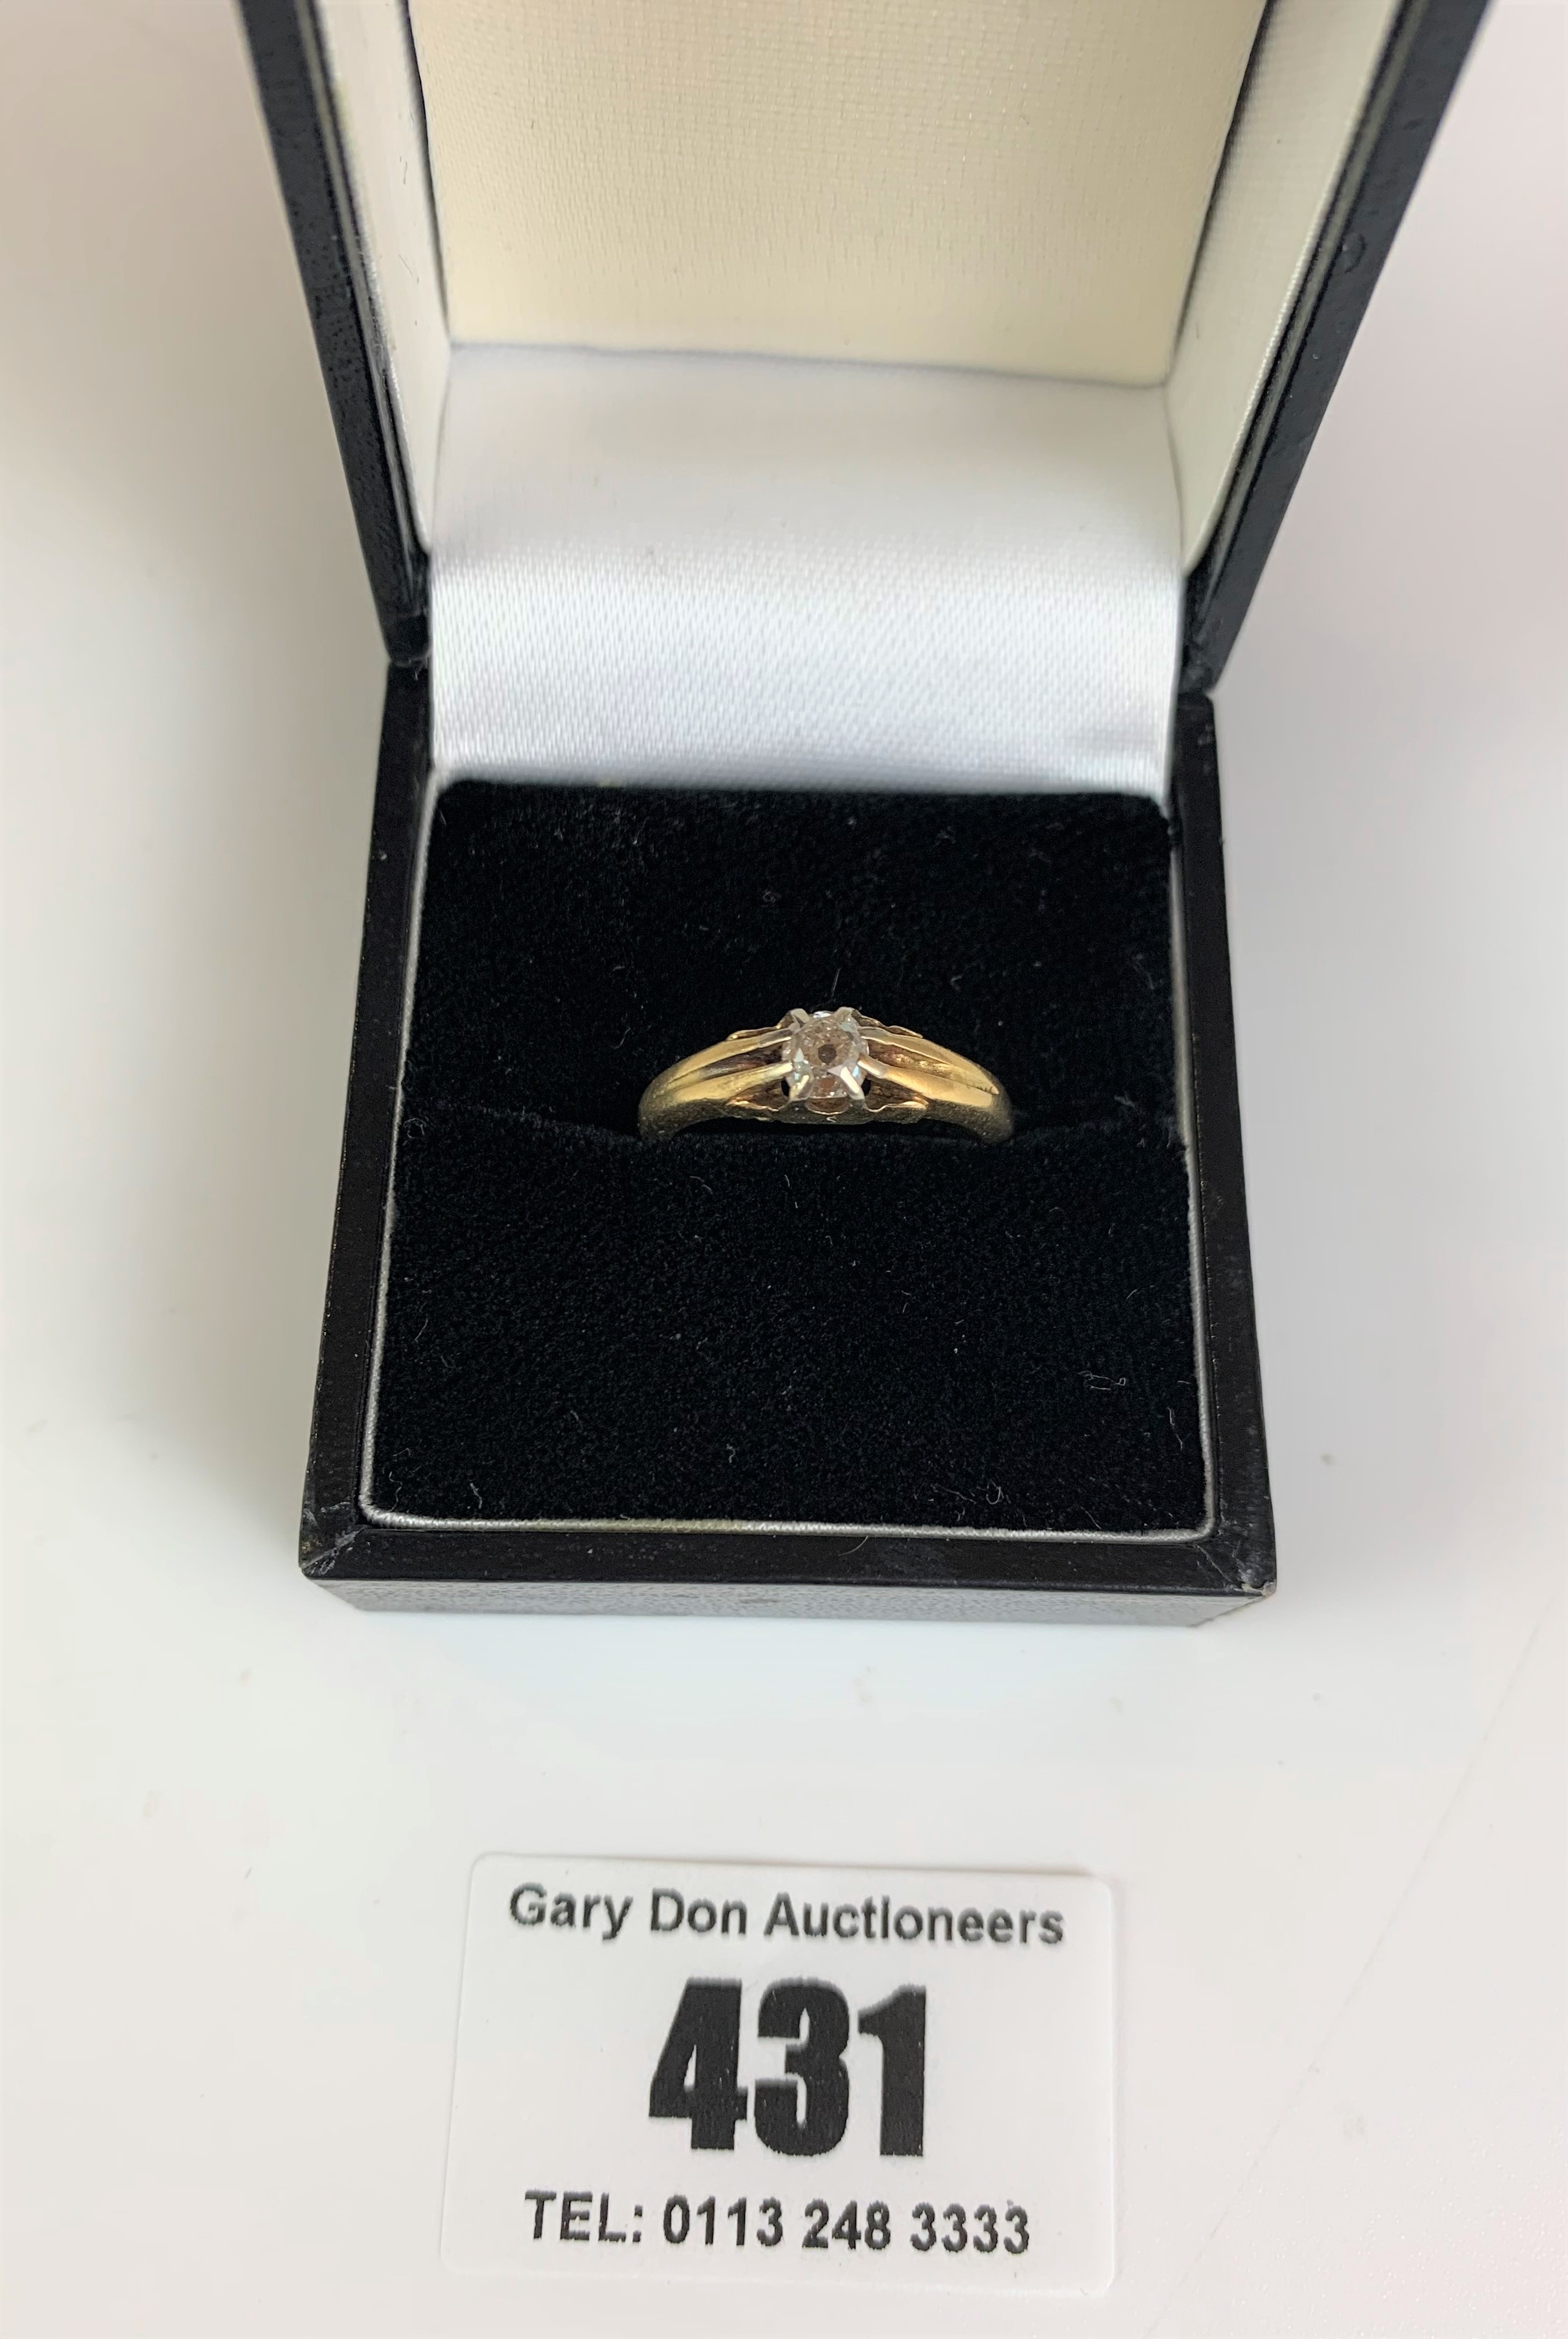 18k gold and diamond solitaire ring, size K, w: 4.1 gms - Image 2 of 5